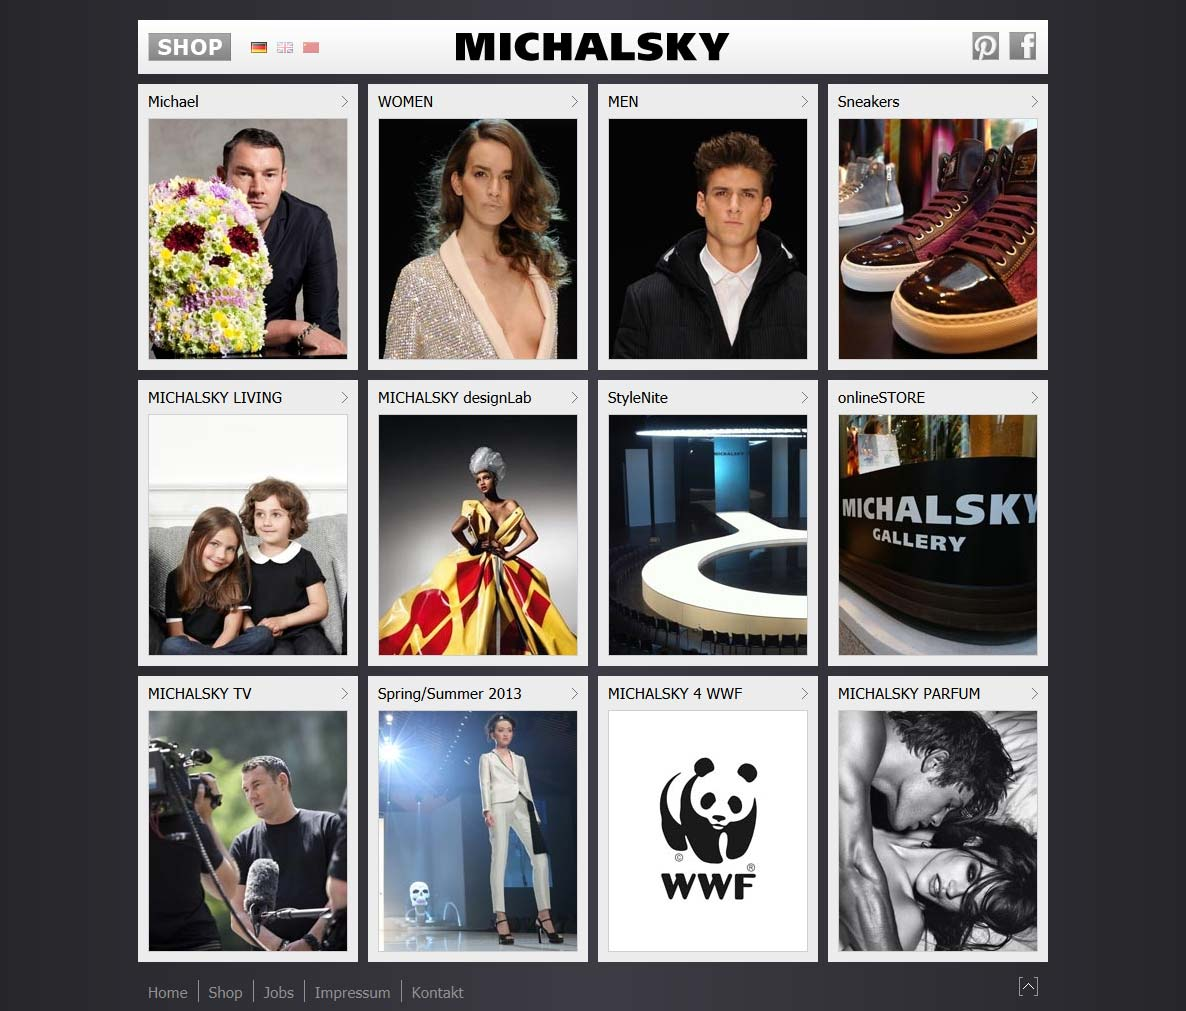 Michael Michalsky - Brand new website